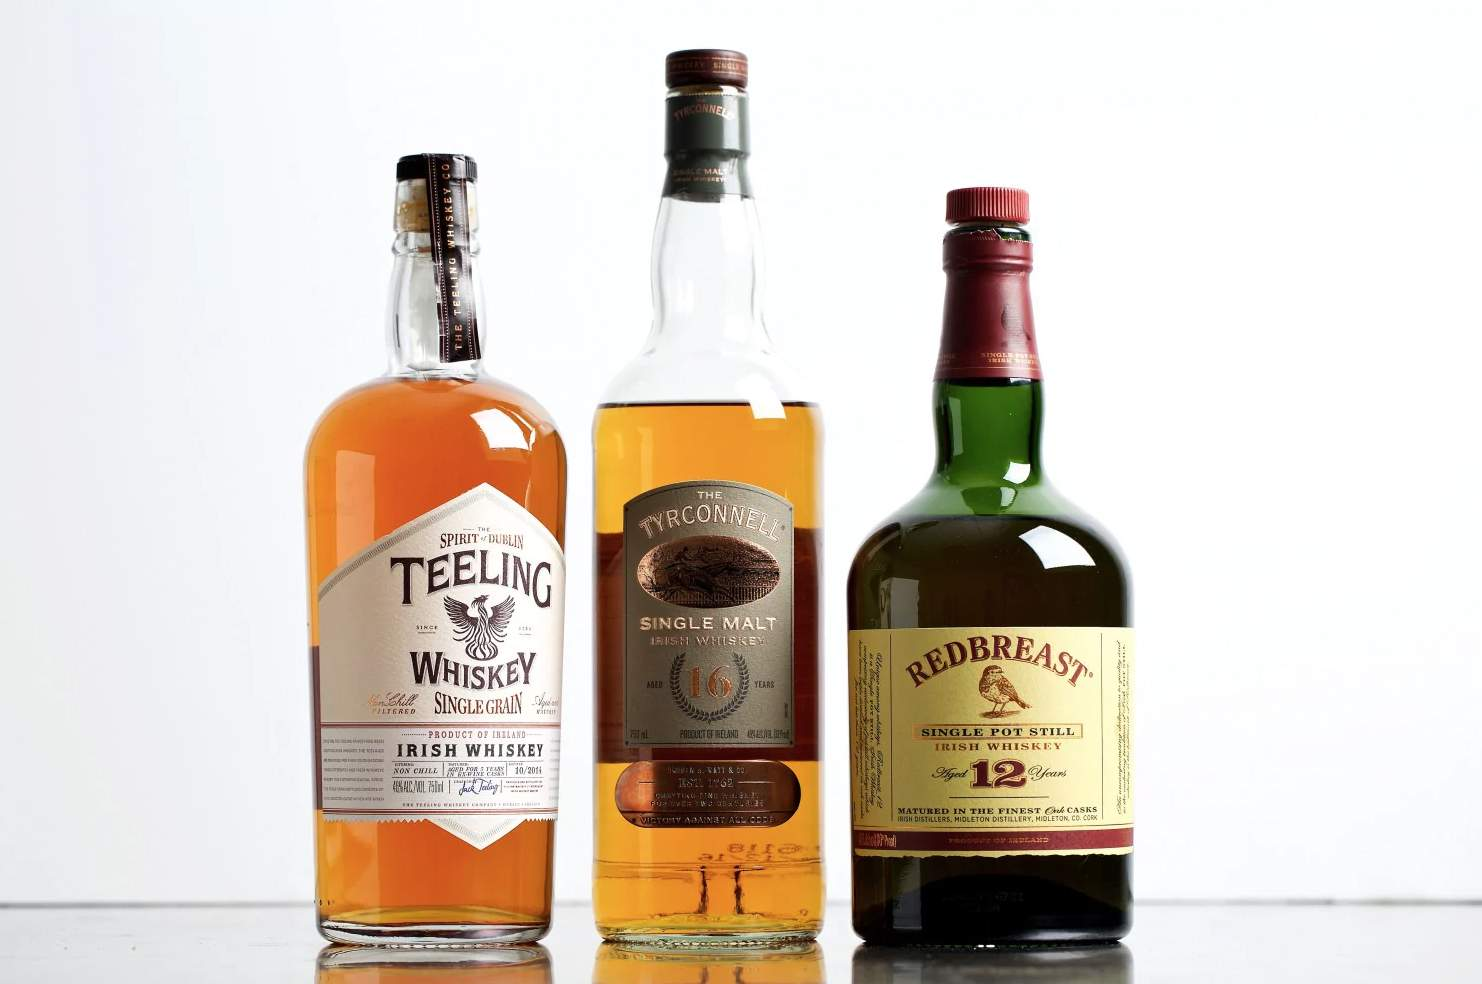 8 Irish whiskeys to try when you want to get serious